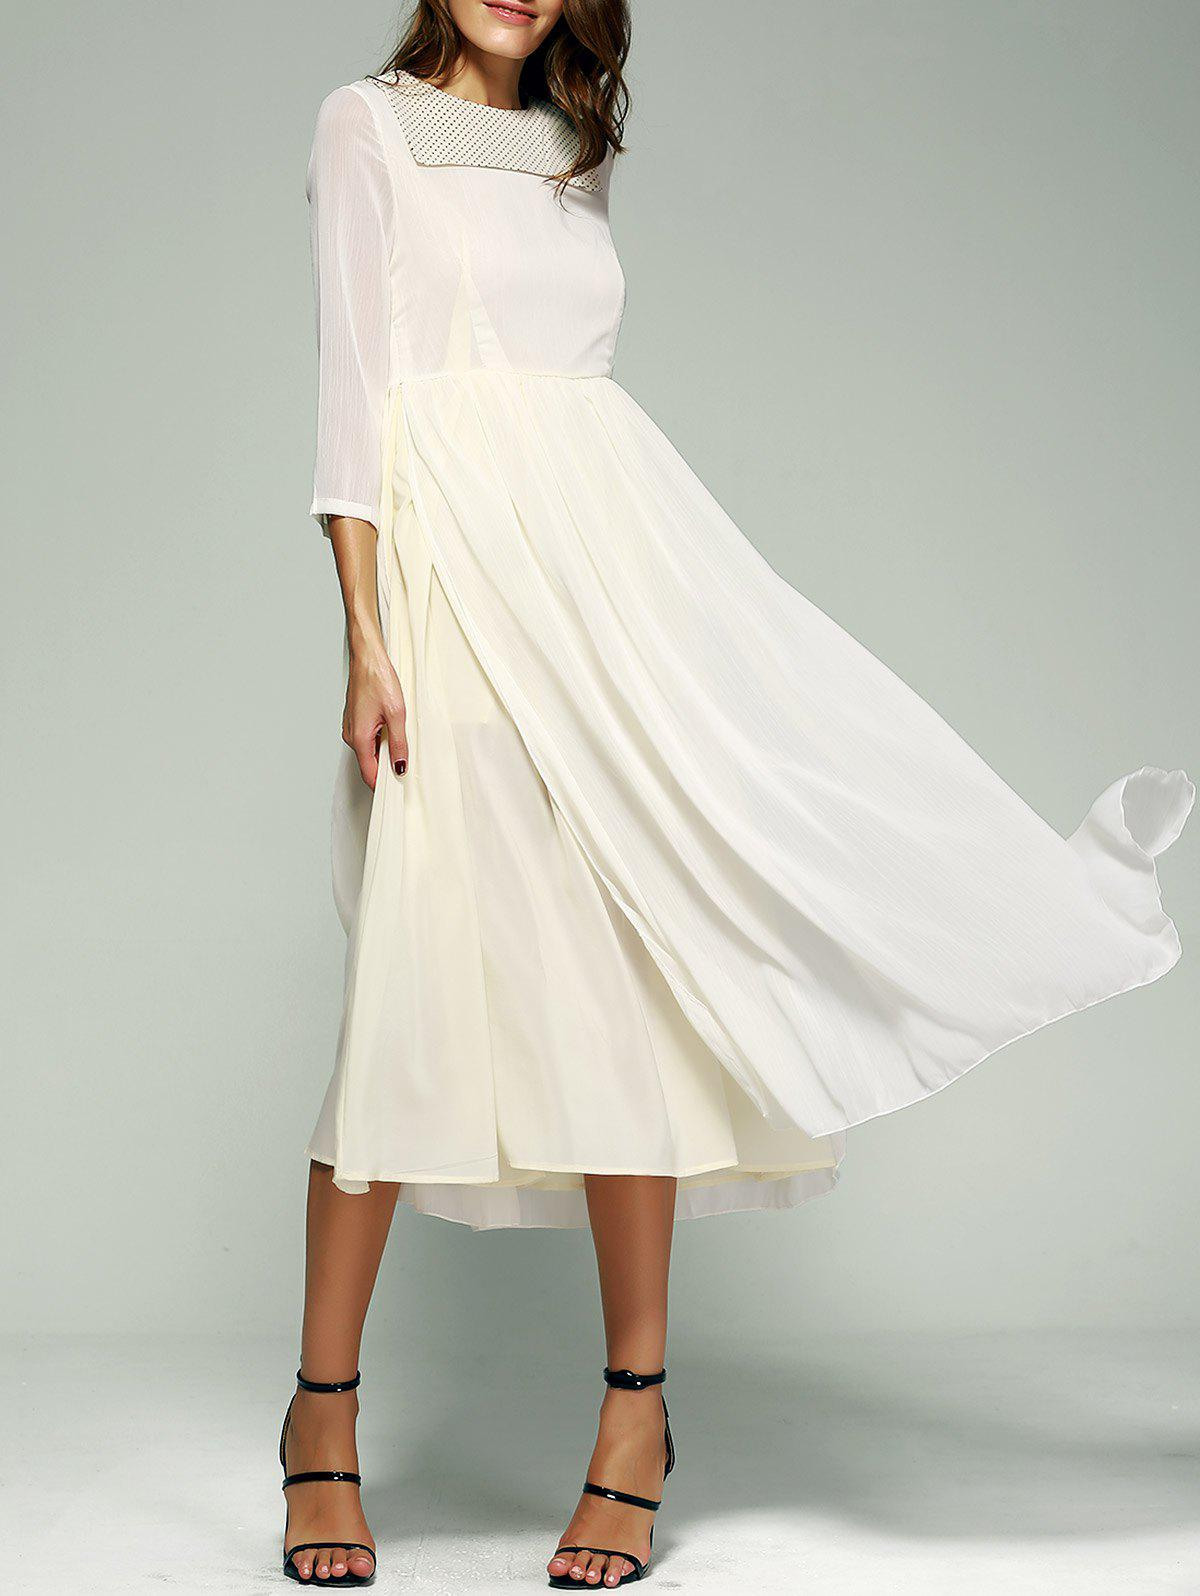 Splicing 3/4 Sleeve Round Neck Dress - OFF WHITE XL